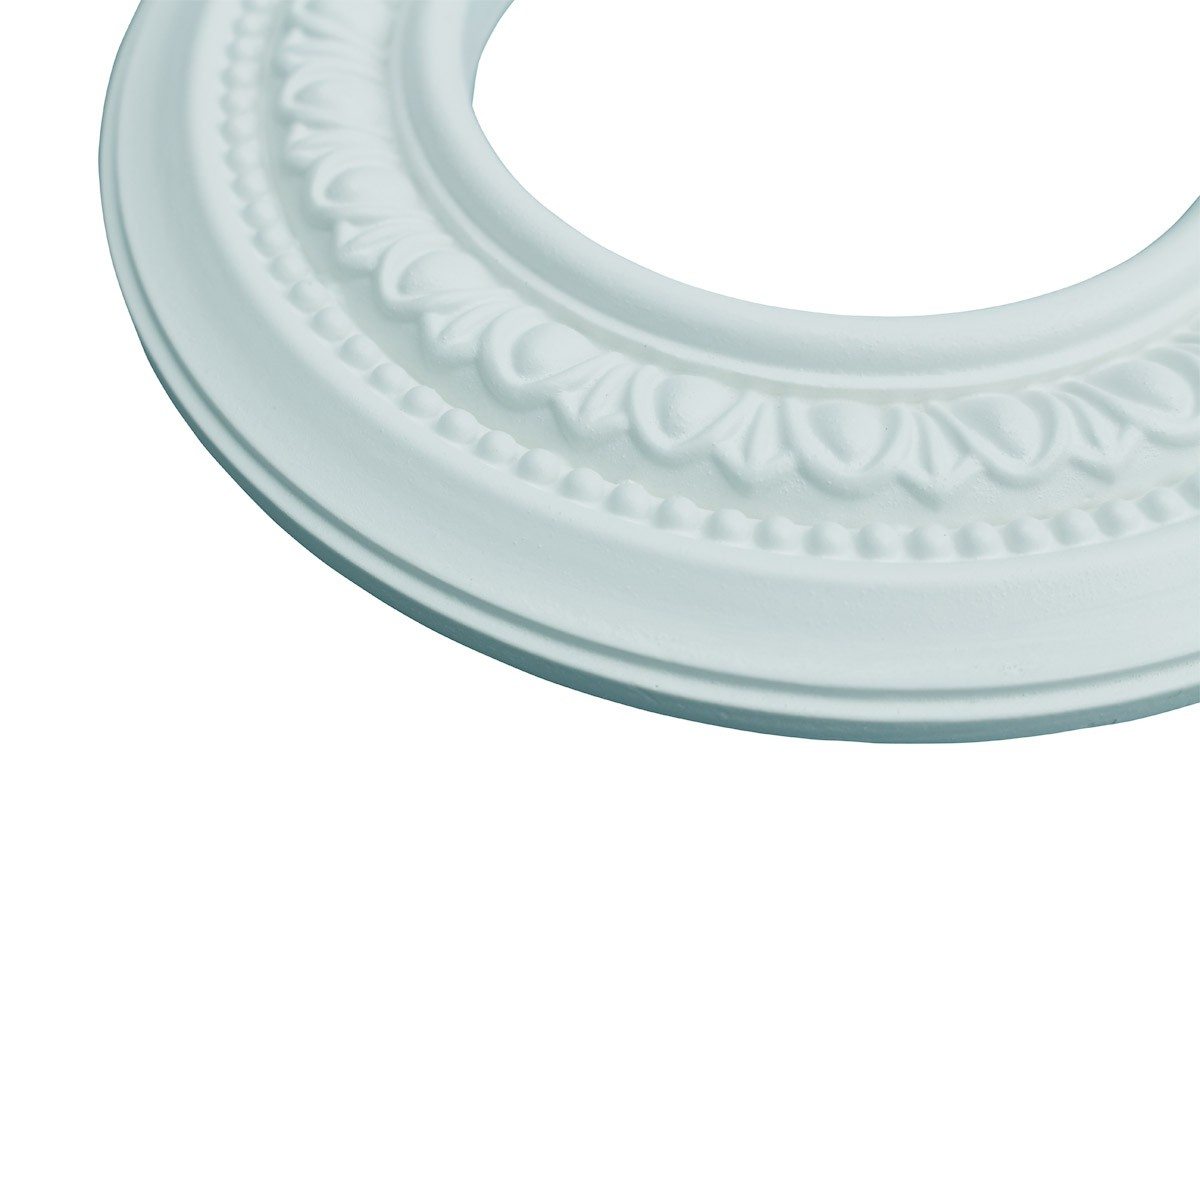 2 Spot Light Trim Medallions 4 ID White Urethane Set of 2 Light Medallion Light Medallions Lighting Medallion